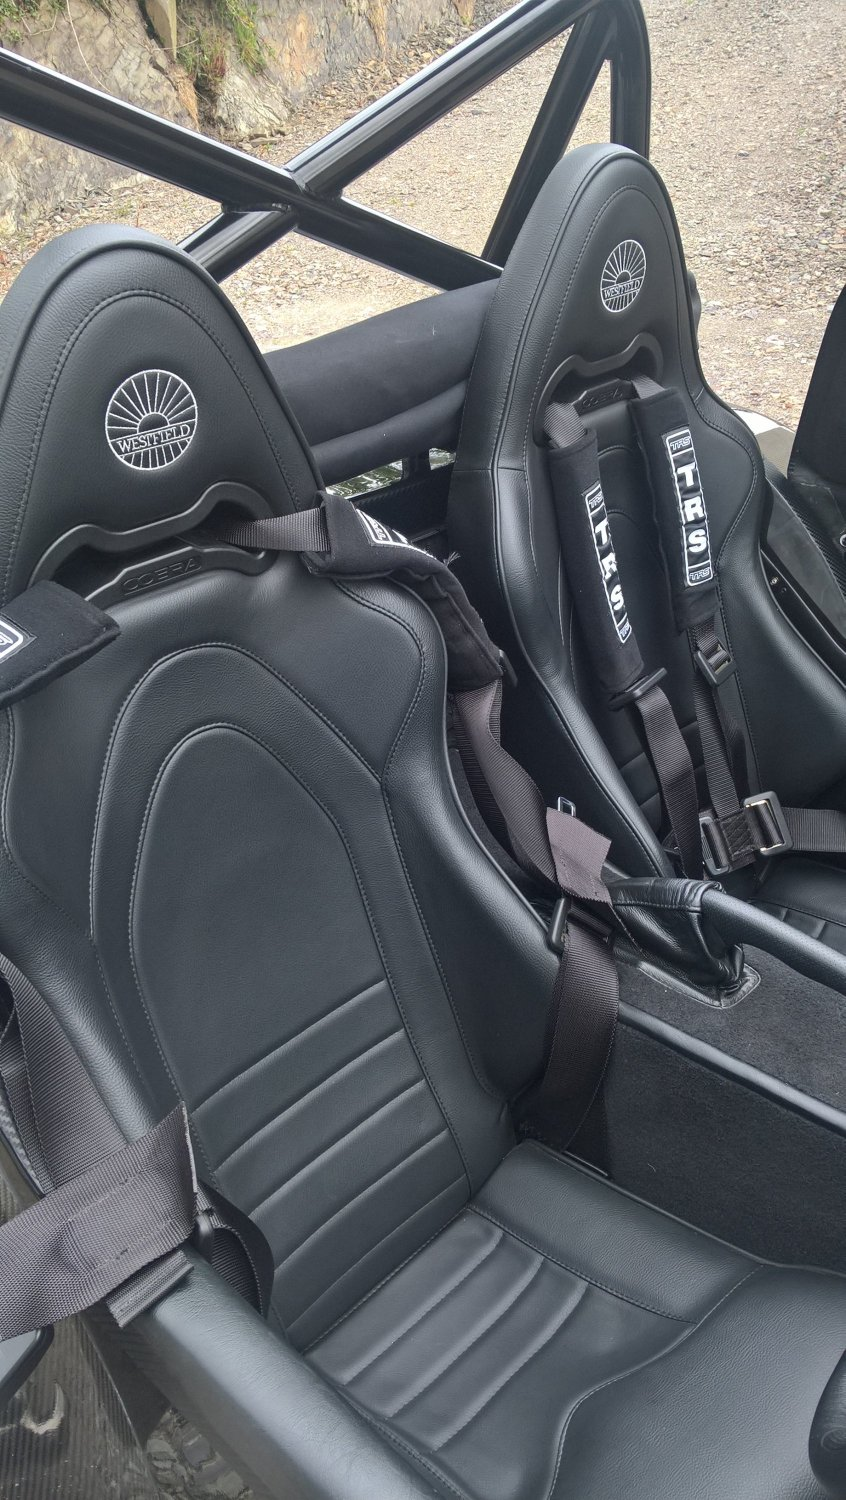 Westfield_sport_turbo_seats_for_sale.jpg